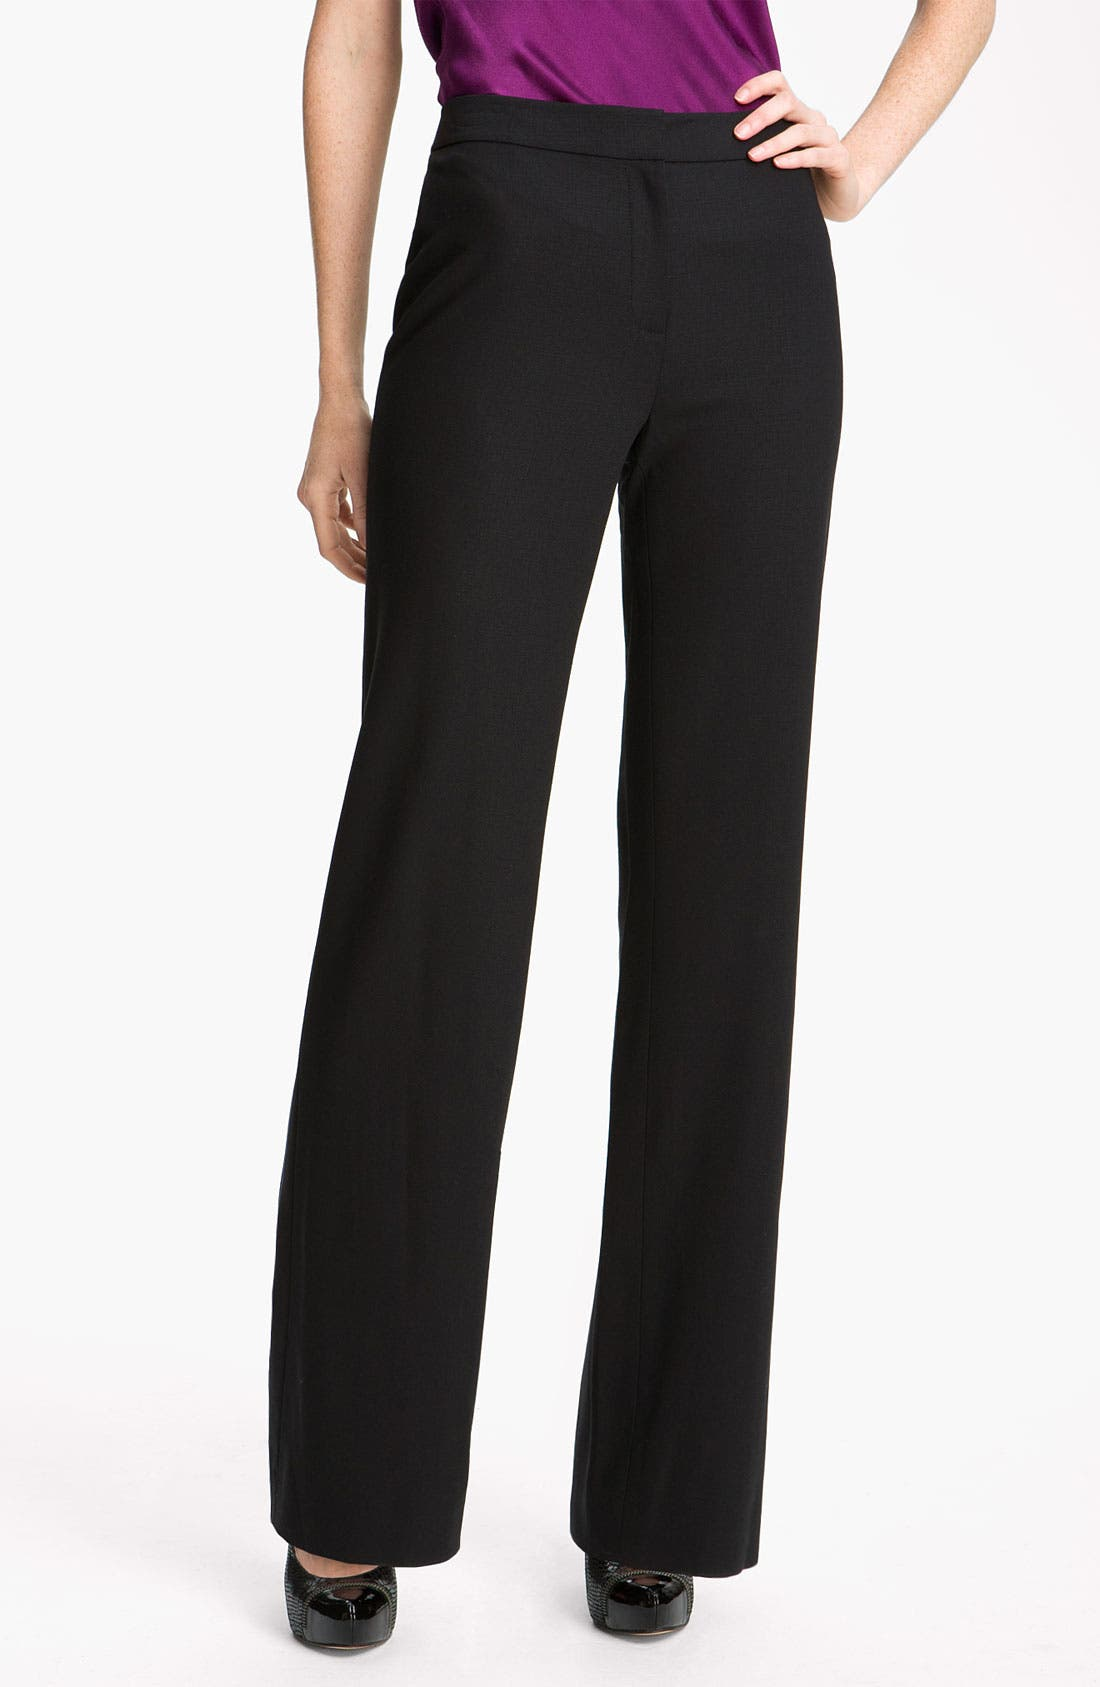 Alternate Image 1 Selected - Magaschoni Stretch Wool Blend Pants